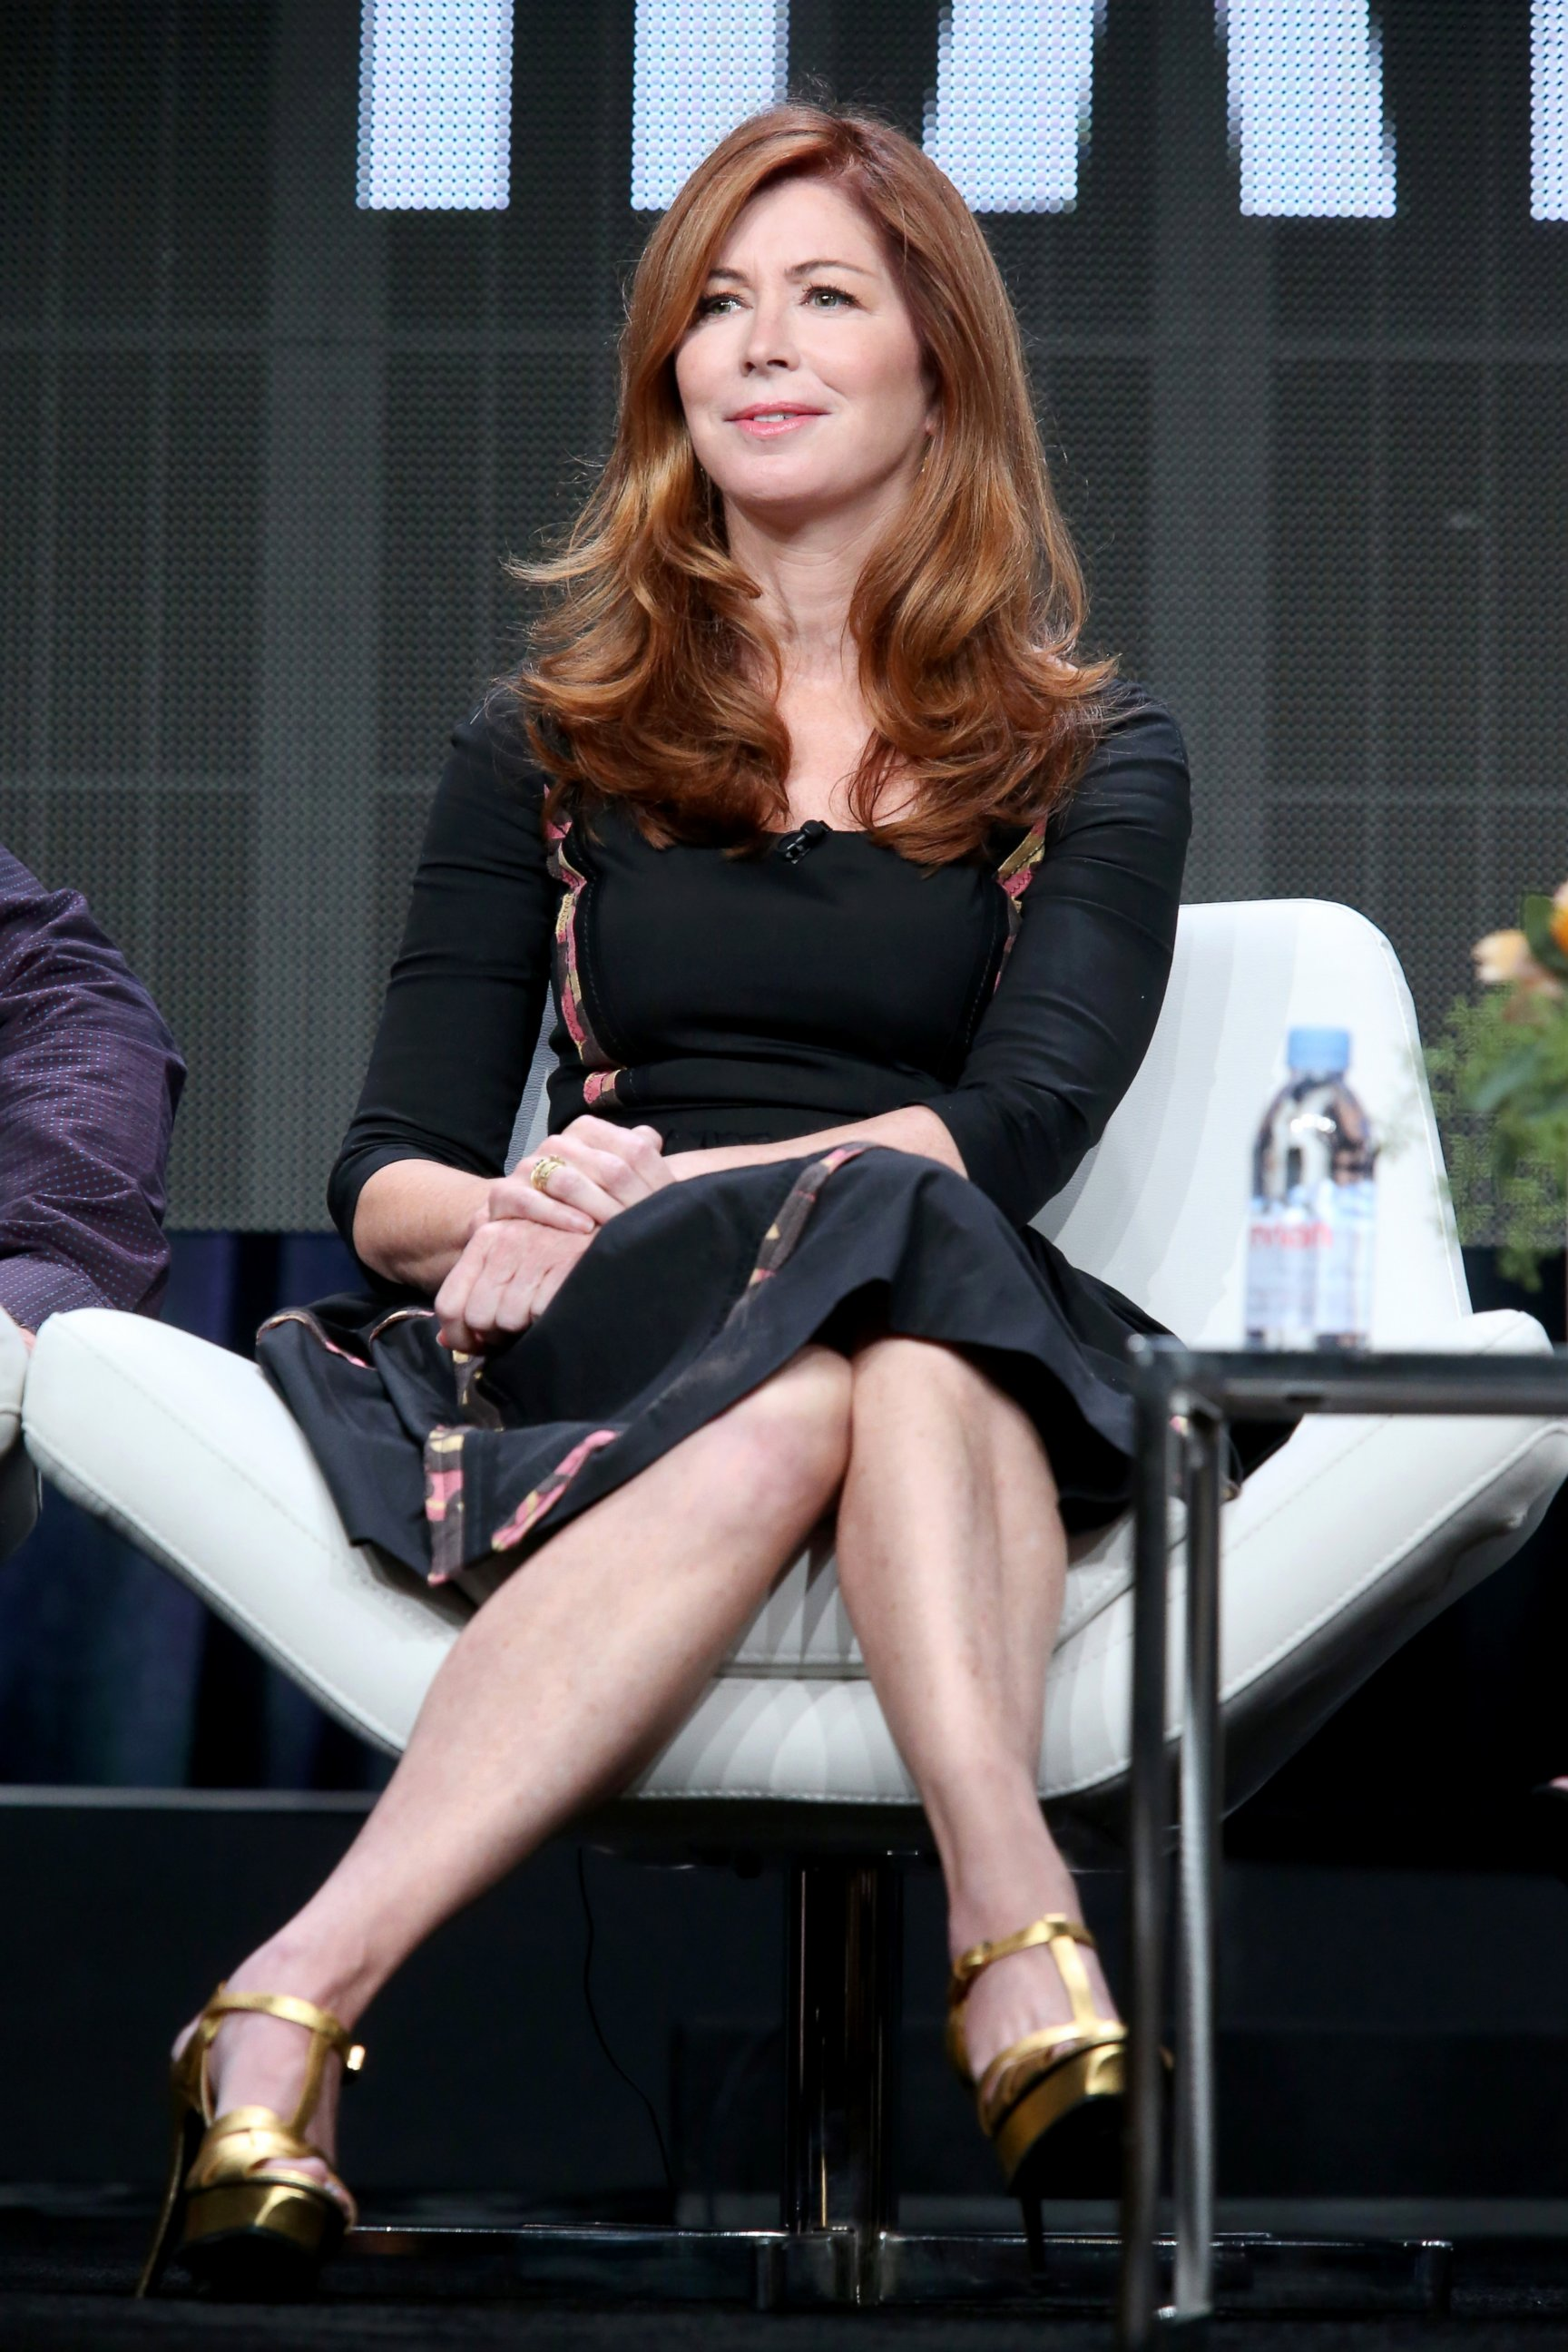 ICloud Dana Delany naked (48 foto and video), Tits, Hot, Feet, butt 2020